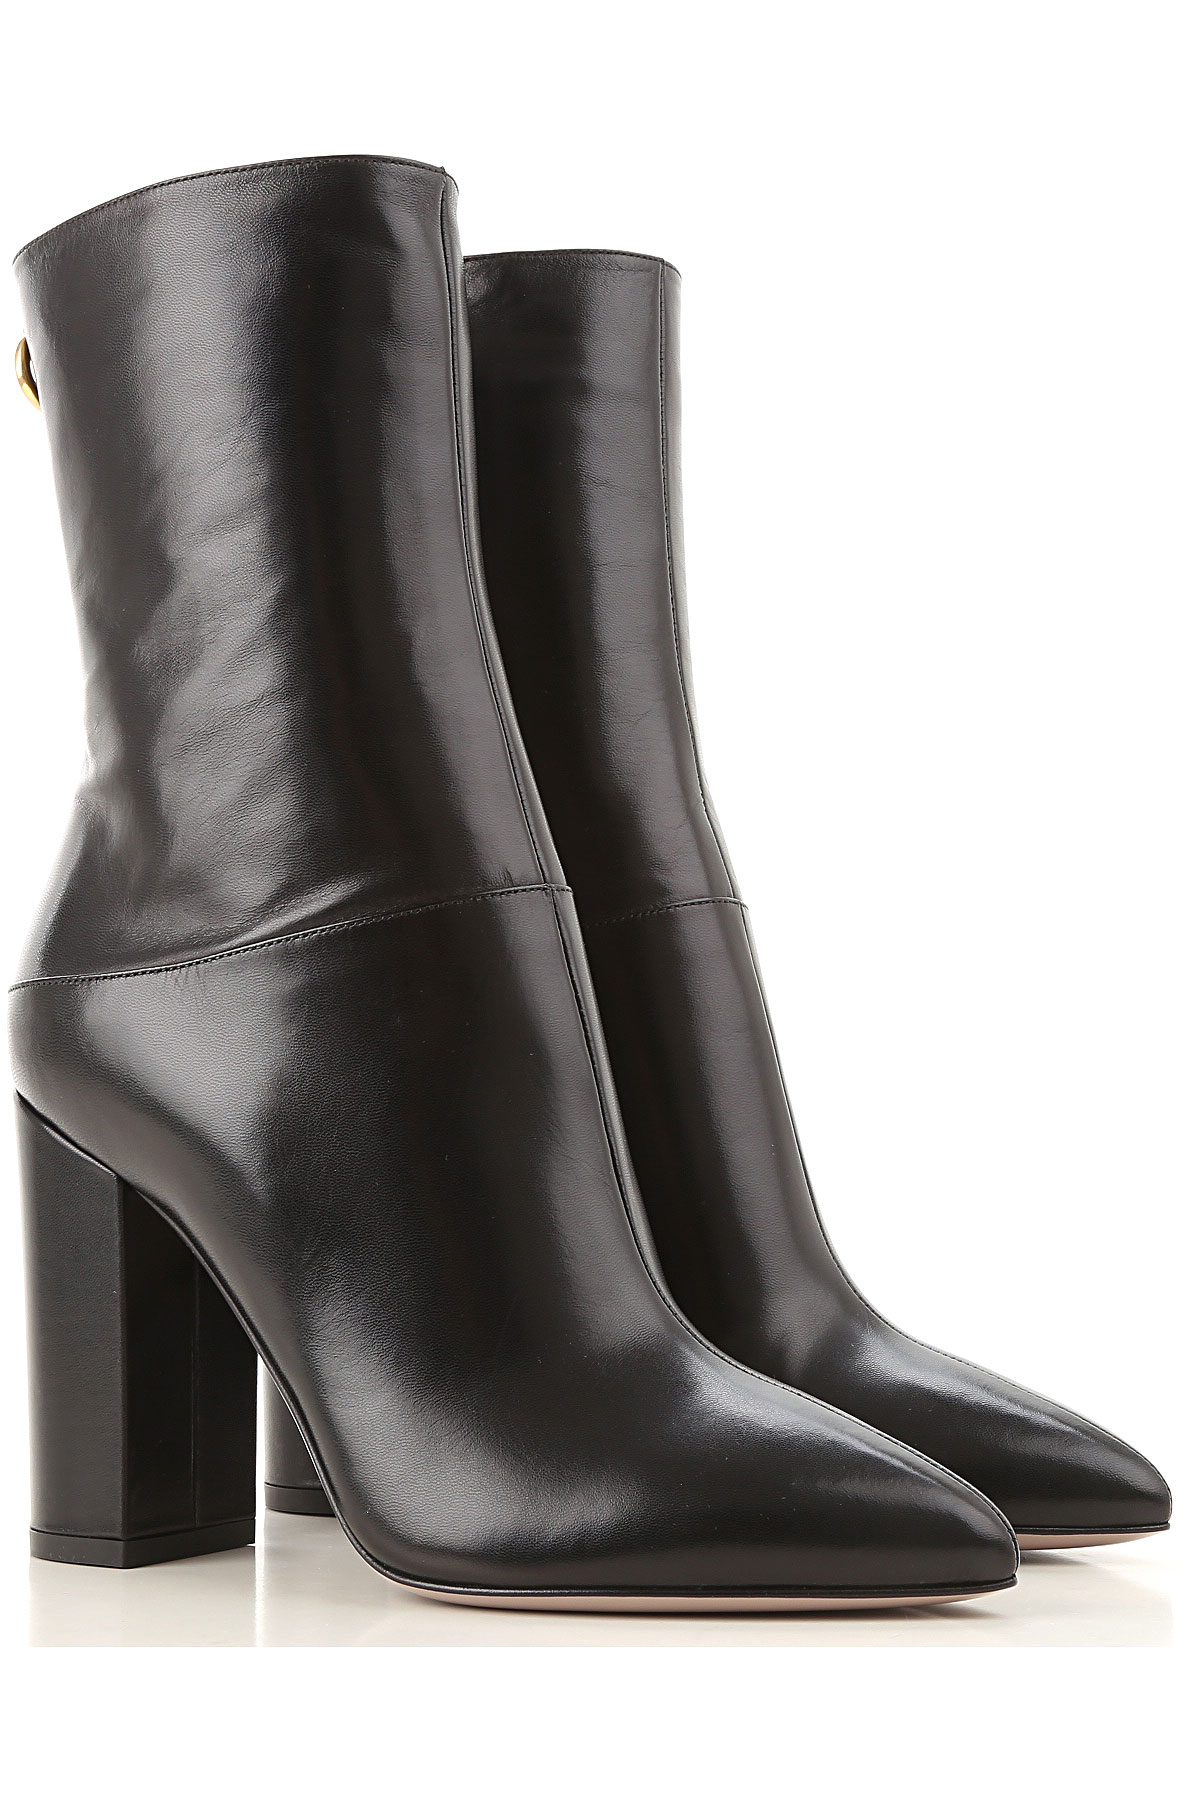 Valentino Garavani Boots for Women, Booties On Sale, Black, Leather, 2019, 9 9.5